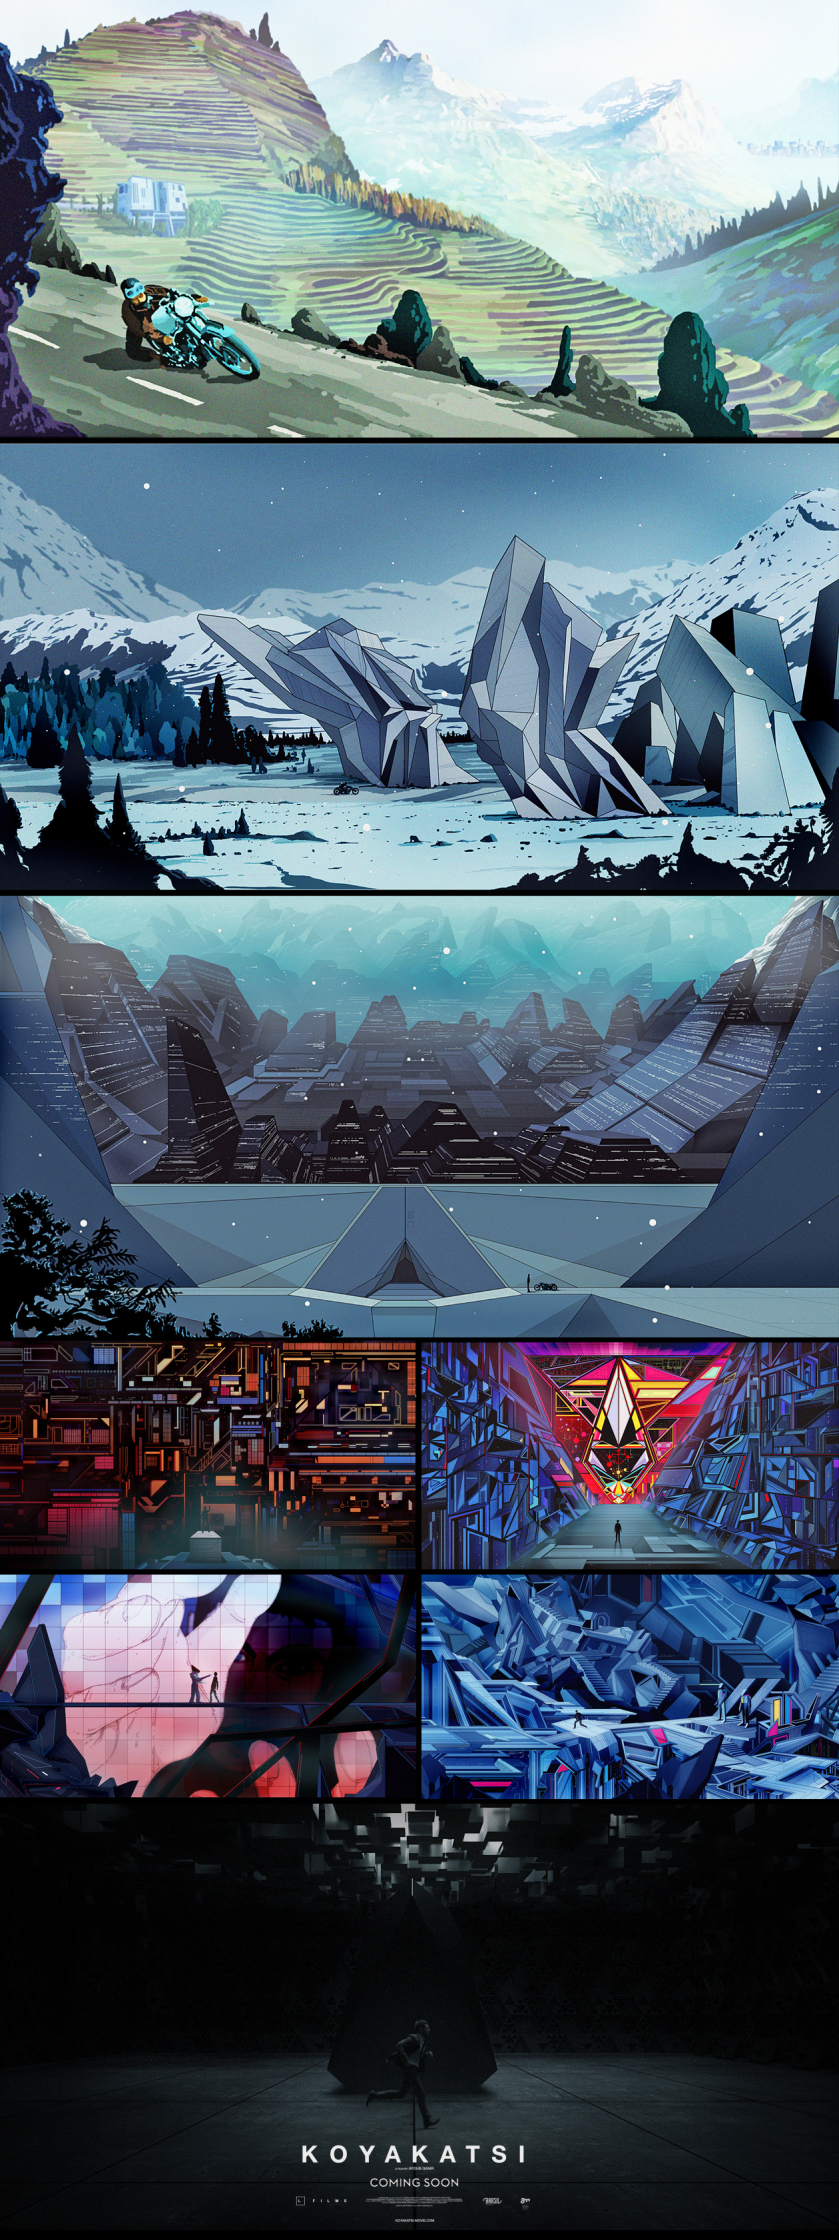 Kilian Eng / Concept Art For Koyakatsi Feature Film